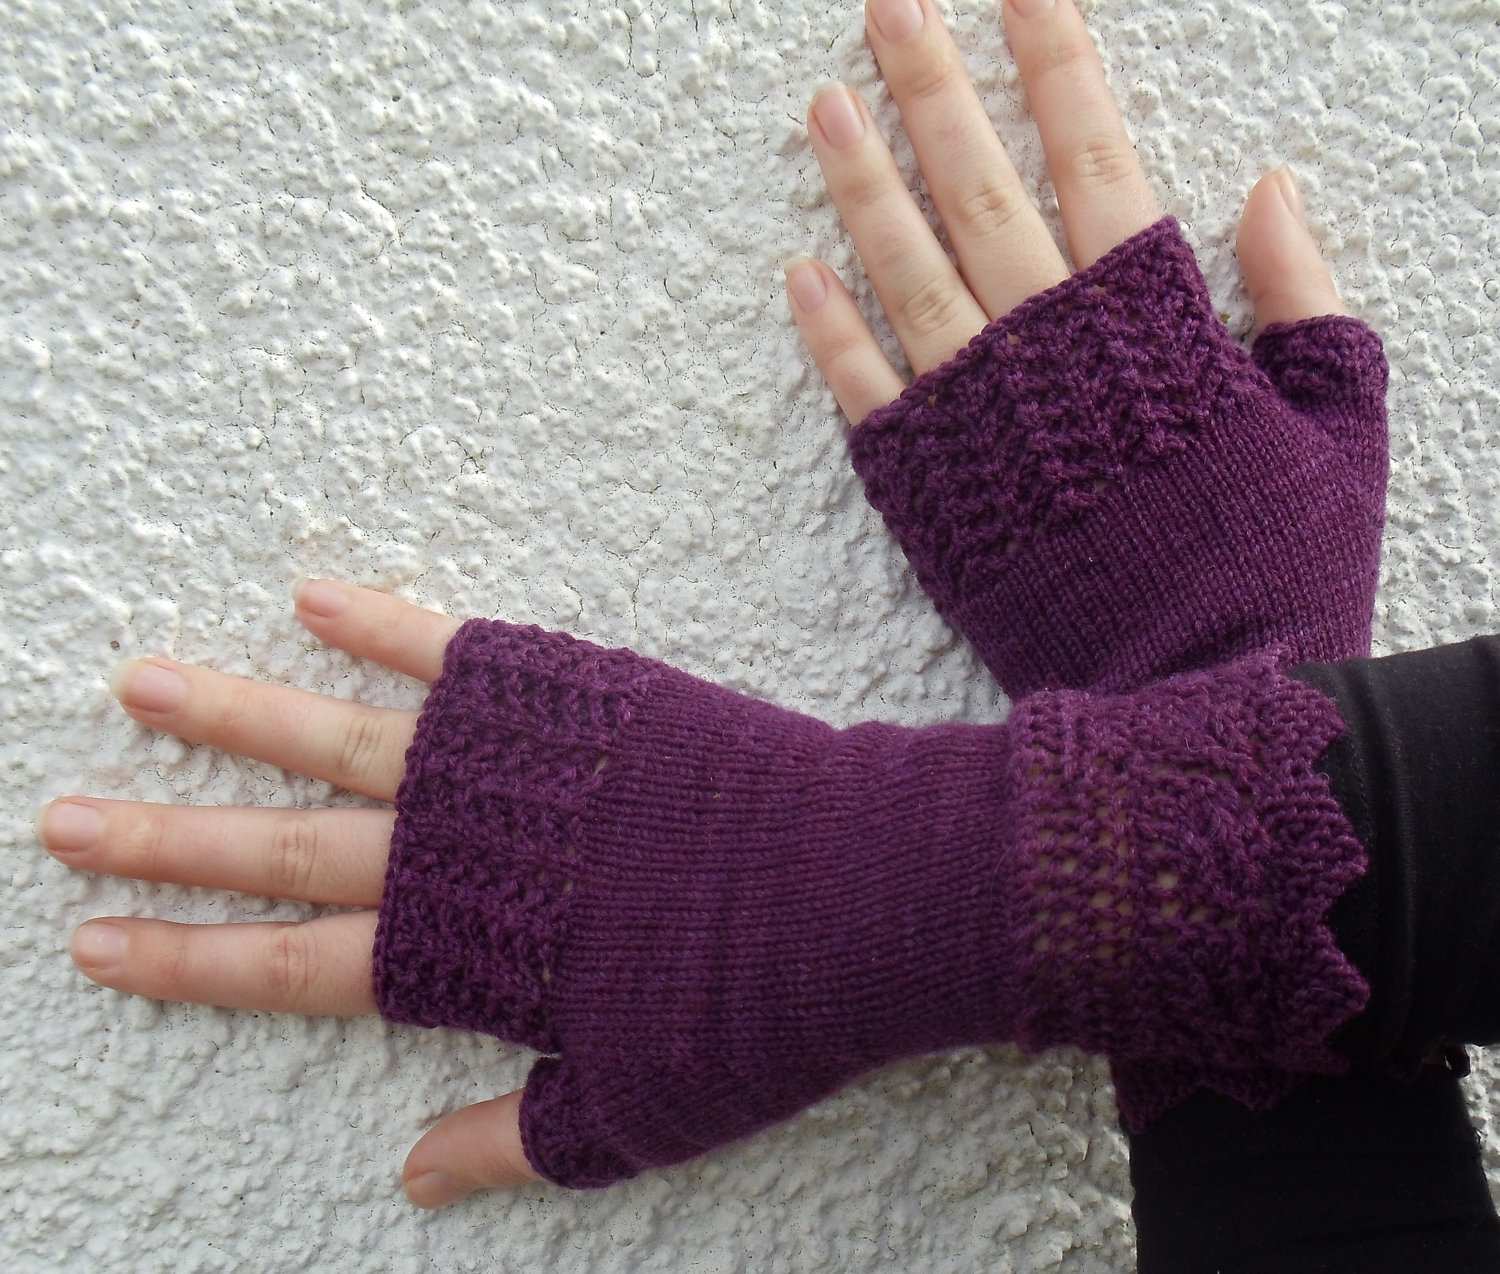 fingerless gloves knitting pattern these include special types of knits. they add a new dimension to the gloves. IKVBSST